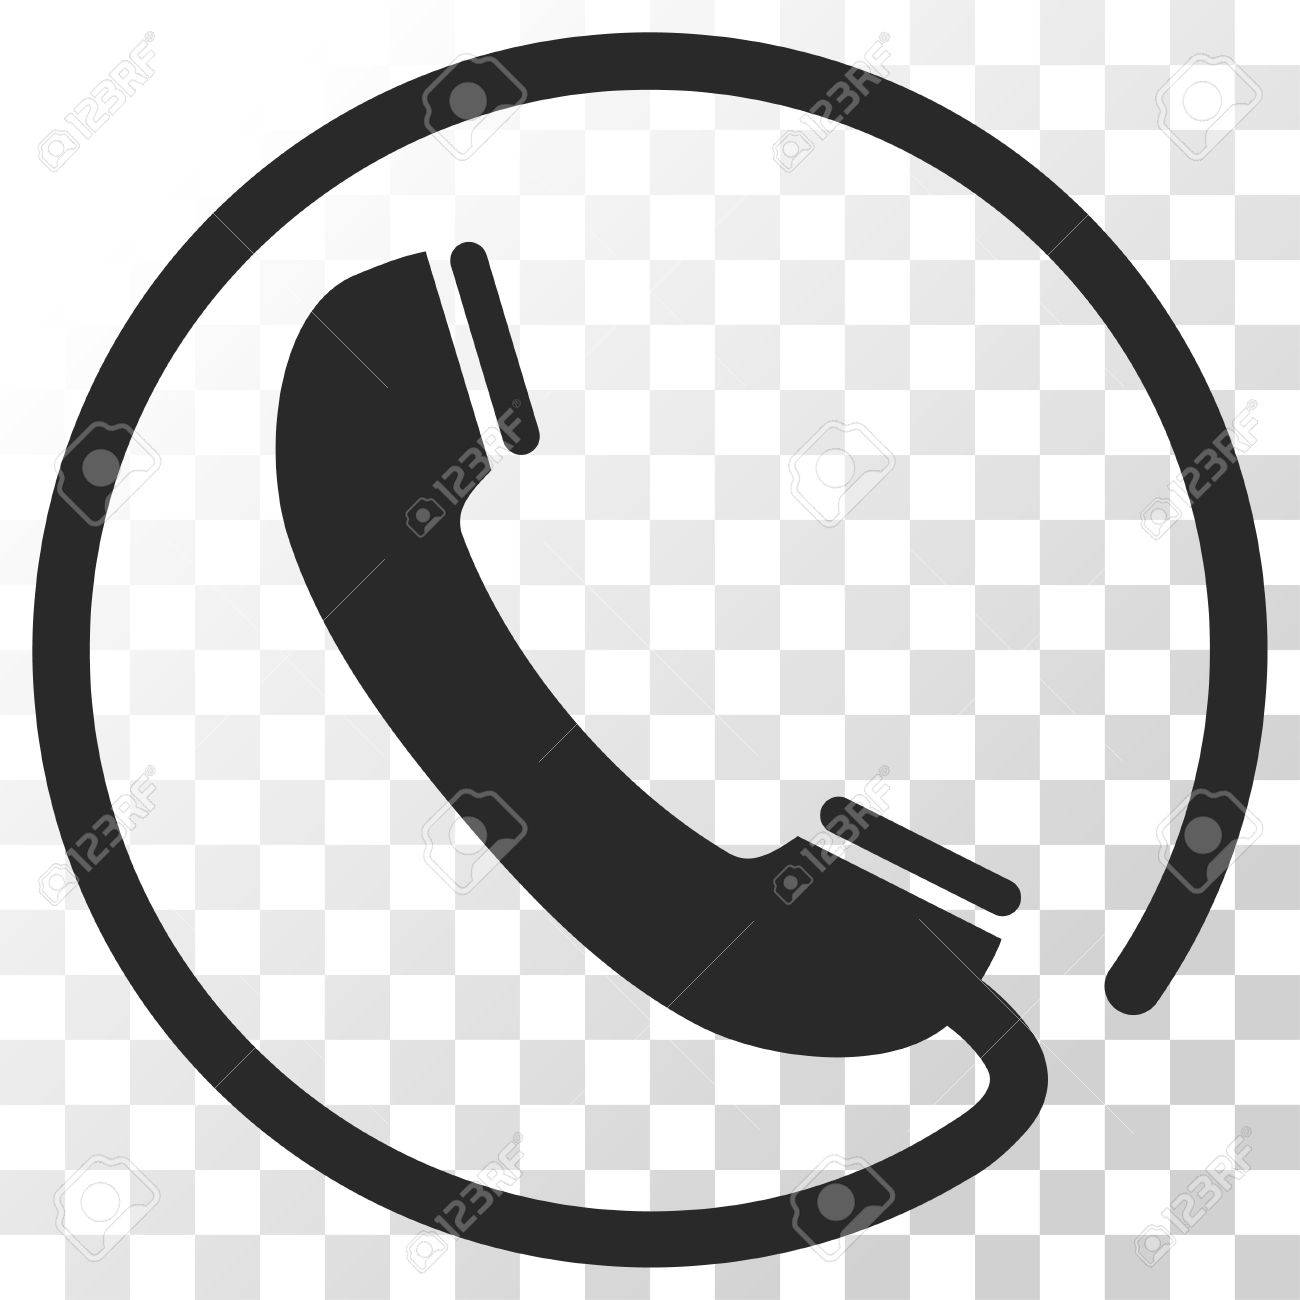 phone vector icon image style is a flat gray color pictogram rh 123rf com vector phoneme vector phone number